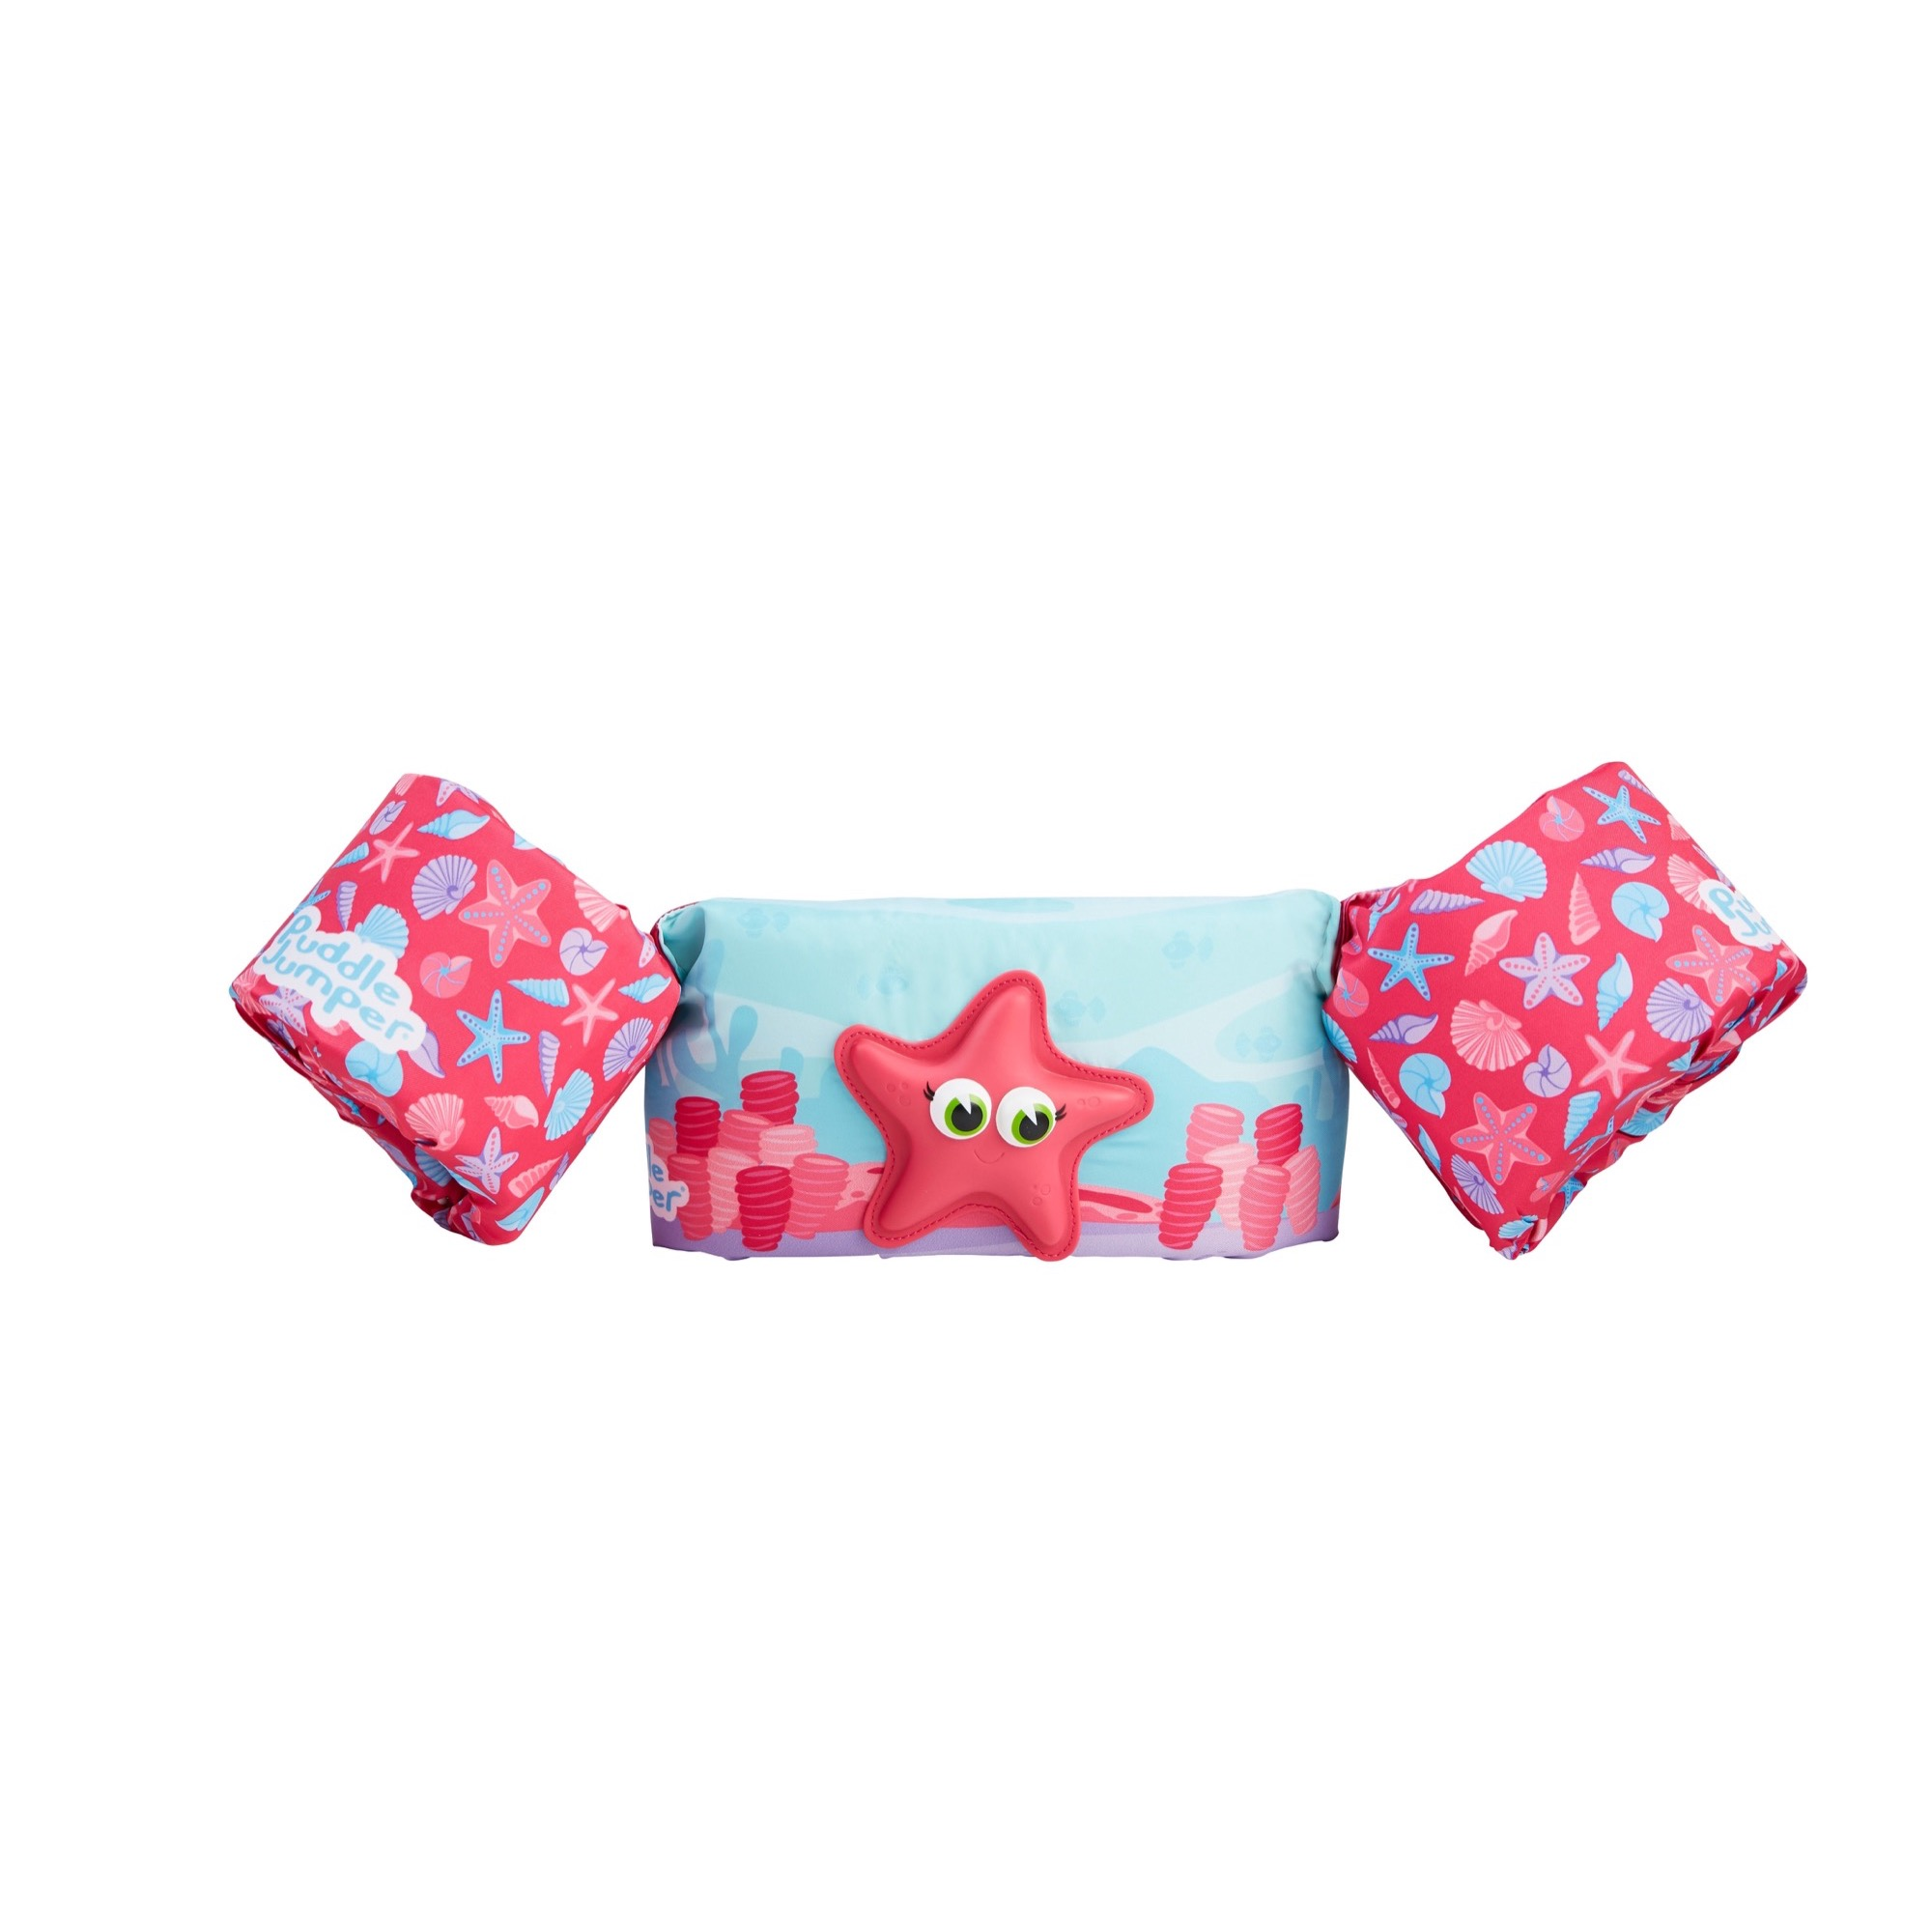 Puddle Jumper Kids Deluxe Life Vest with 3D Character for Children 30-50 Pounds, Starfish